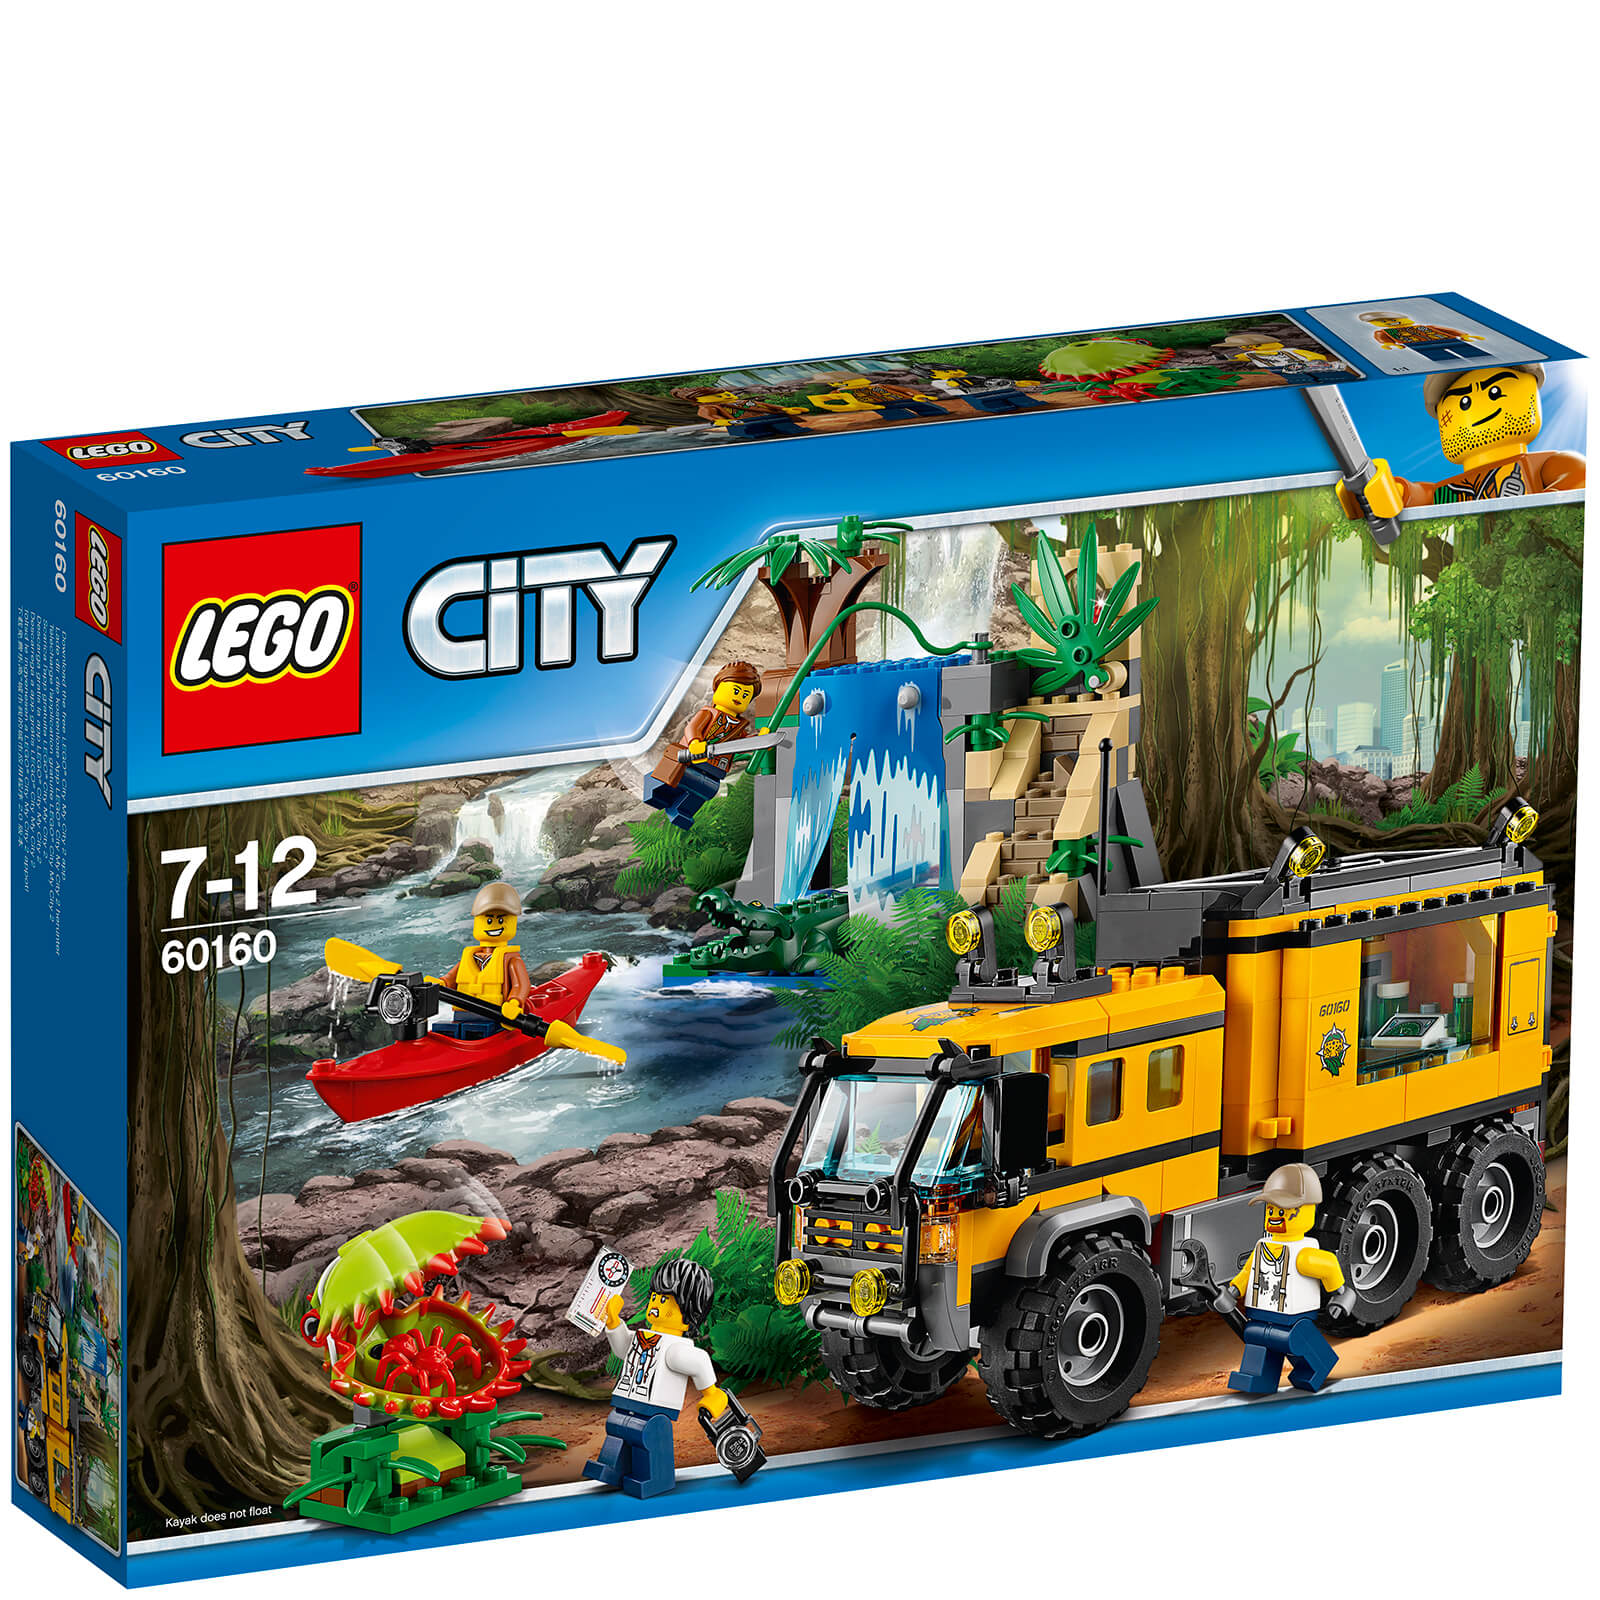 LEGO City: Le laboratoire mobile de la jungle (60160)